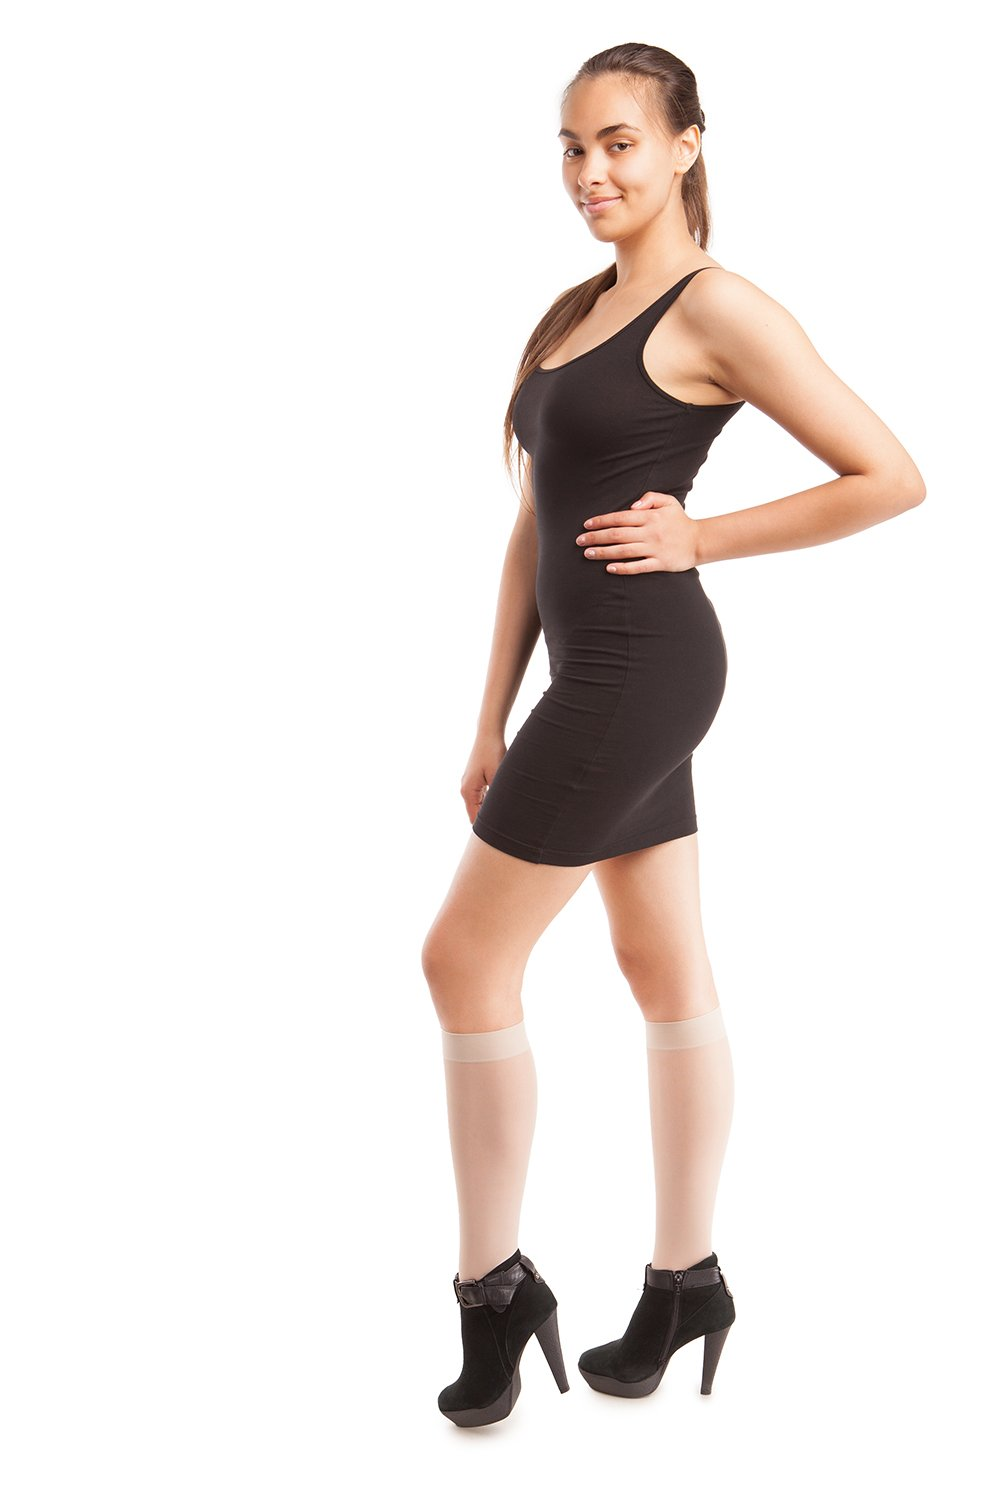 a0f528cc0 Compression Stockings - Sheer Knee Highs - Firm Compression - 23 to 30 mmHG  - Gabrialla